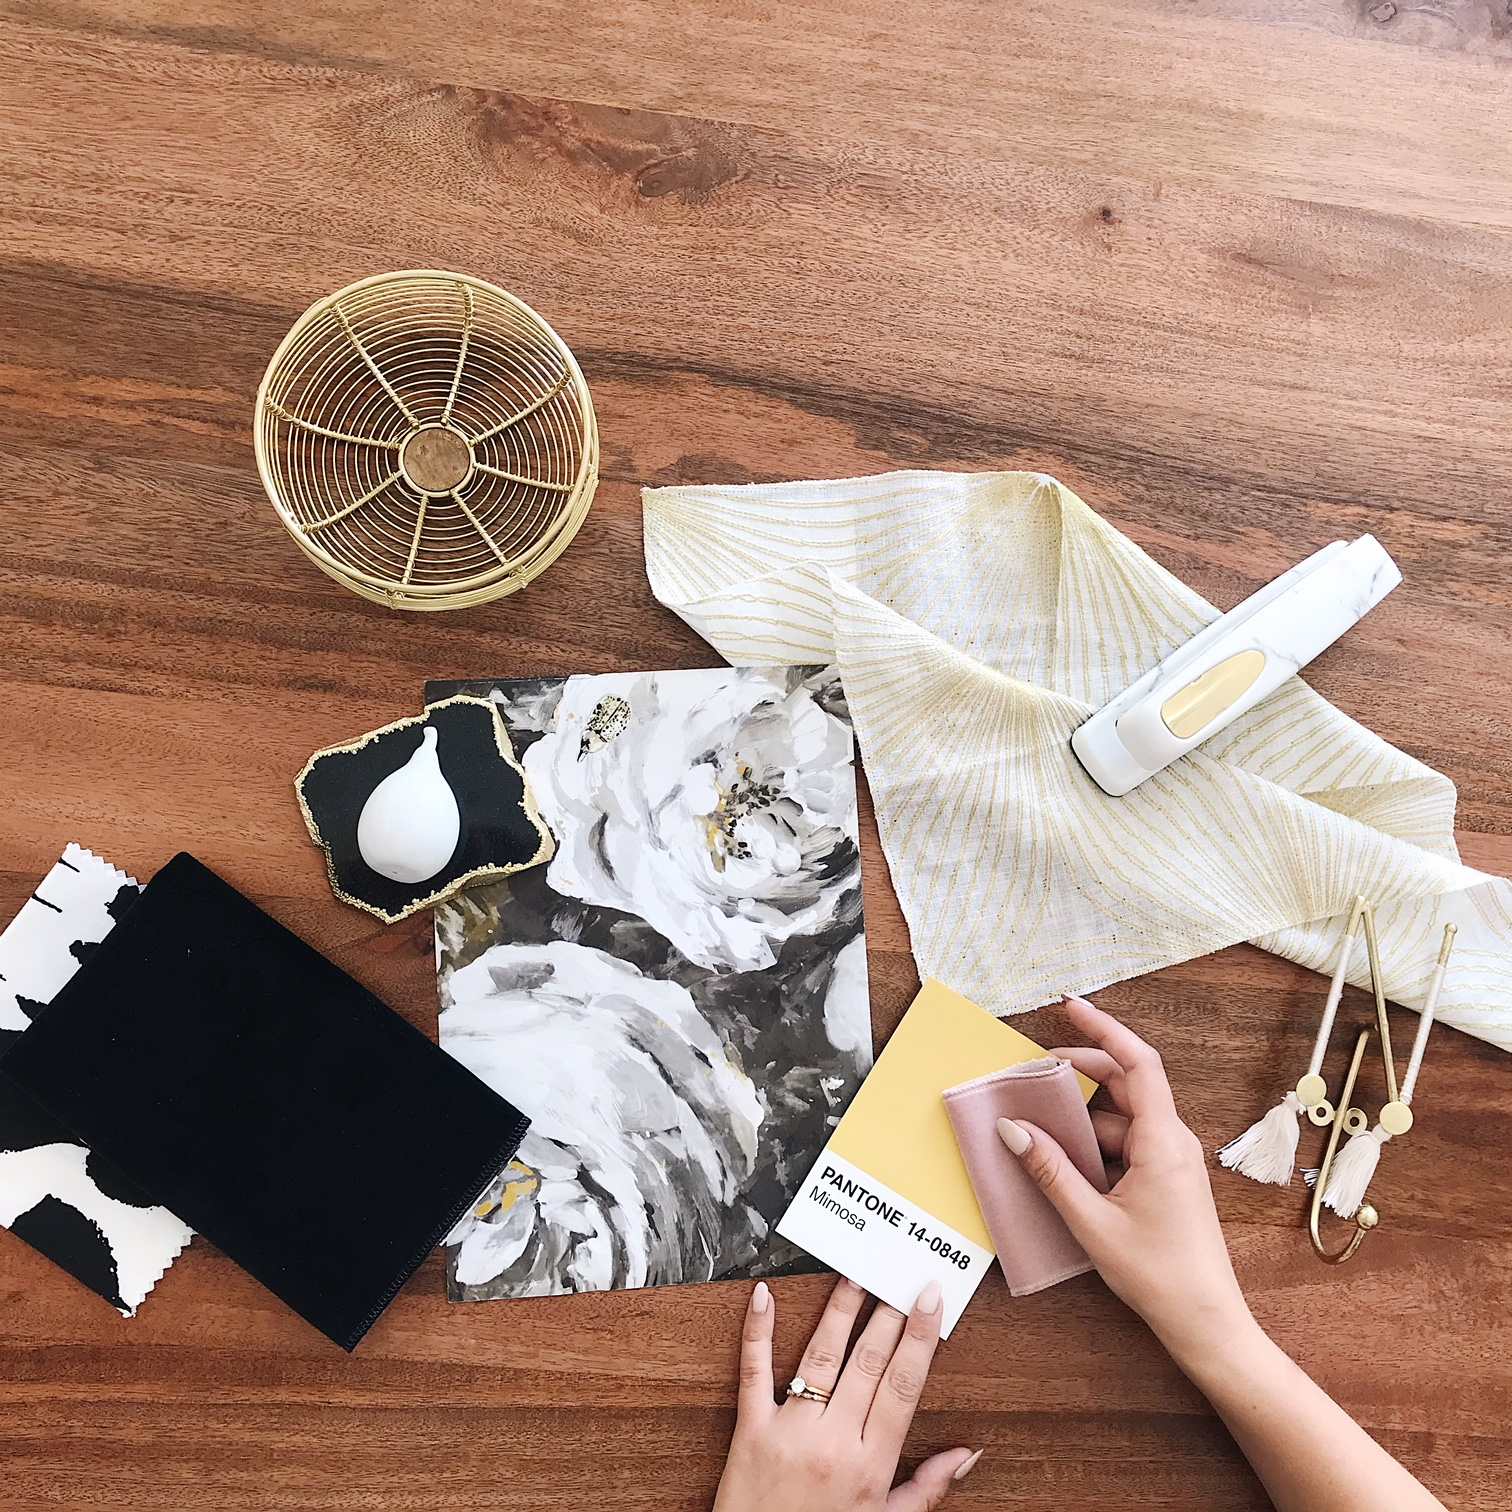 Nyla Free Designs, Confessions of an Interior Designer, Analysis Paralysis, Personal Office Space Flatlay, Calgary Interior Designer